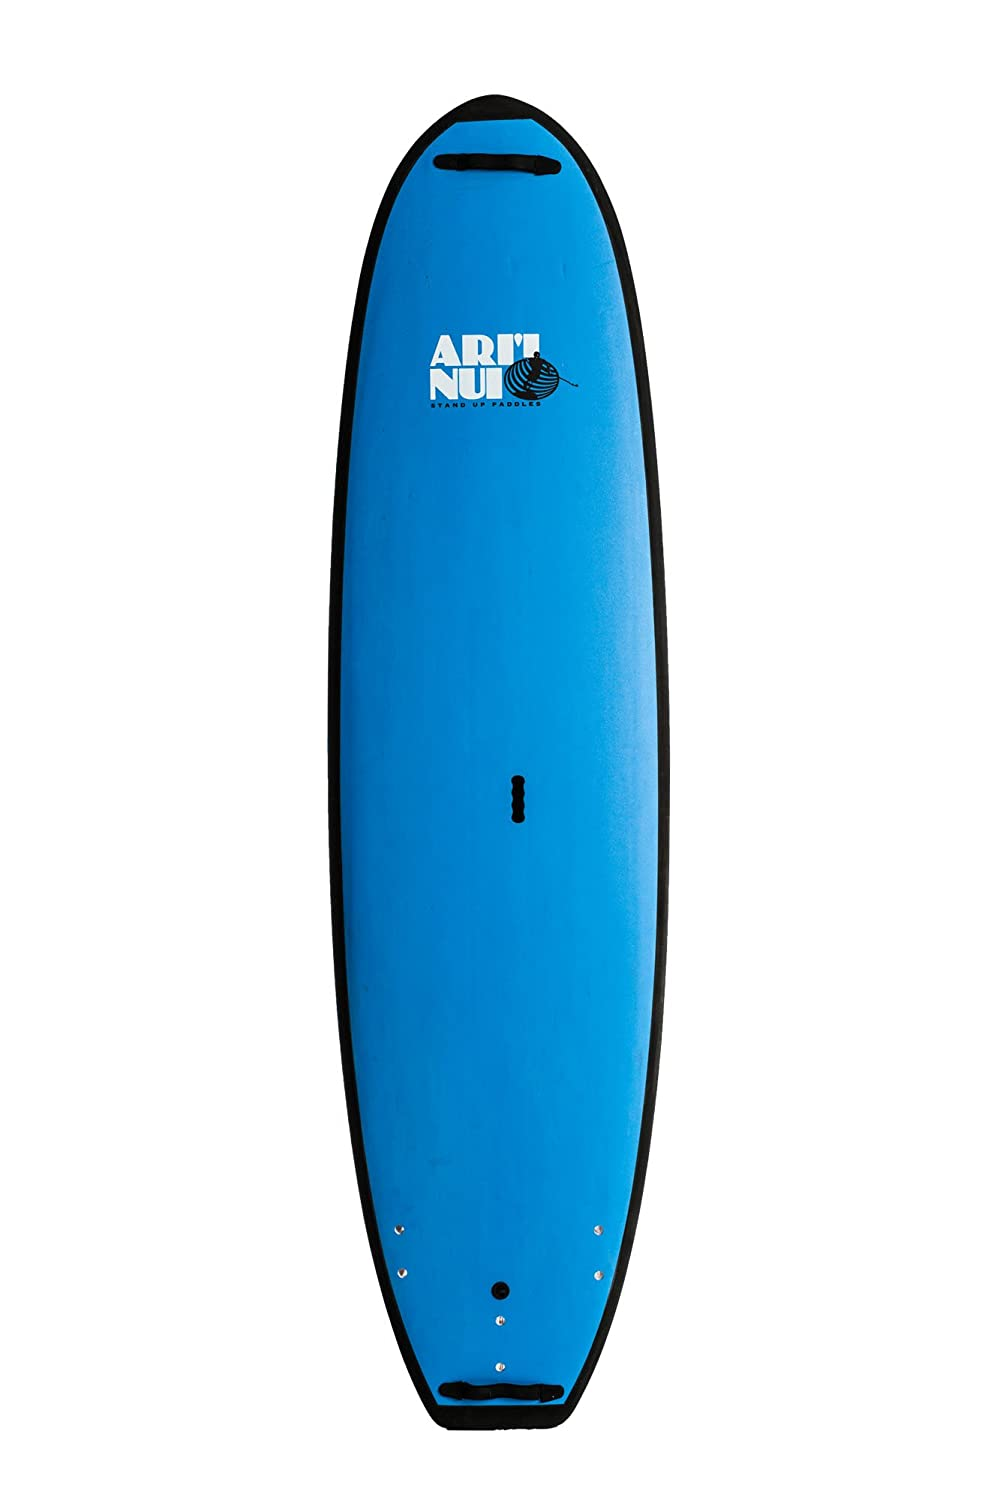 Tabla de Paddle Surf rígida Jake Blues AriI NUI: Amazon.es ...